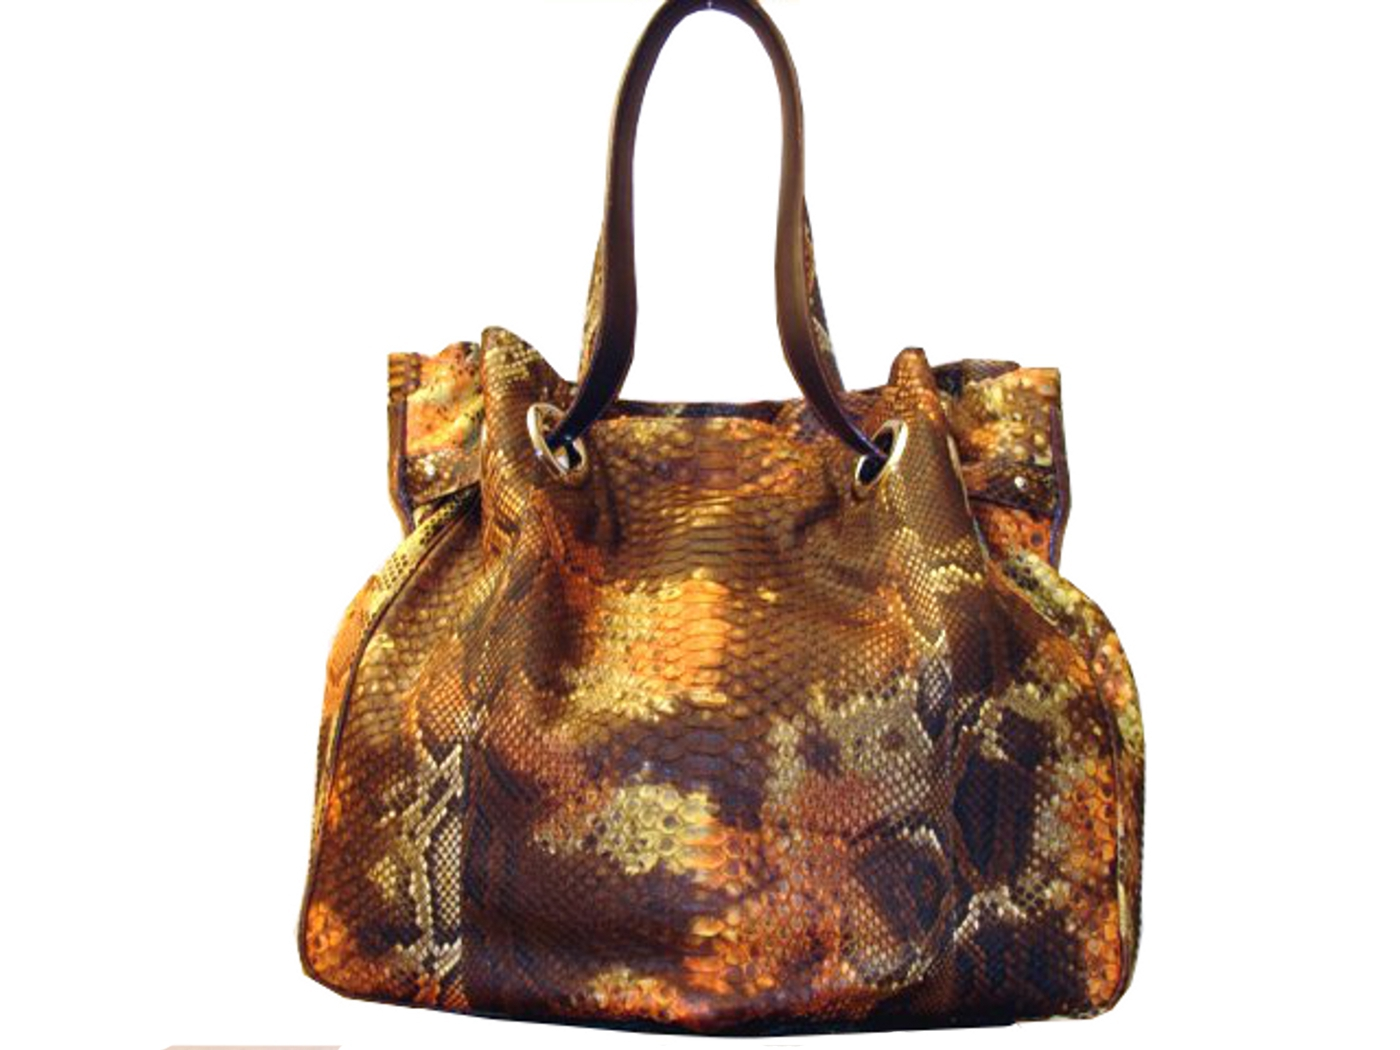 Braschi Handbag Terra Color in Genuine Python Leather!